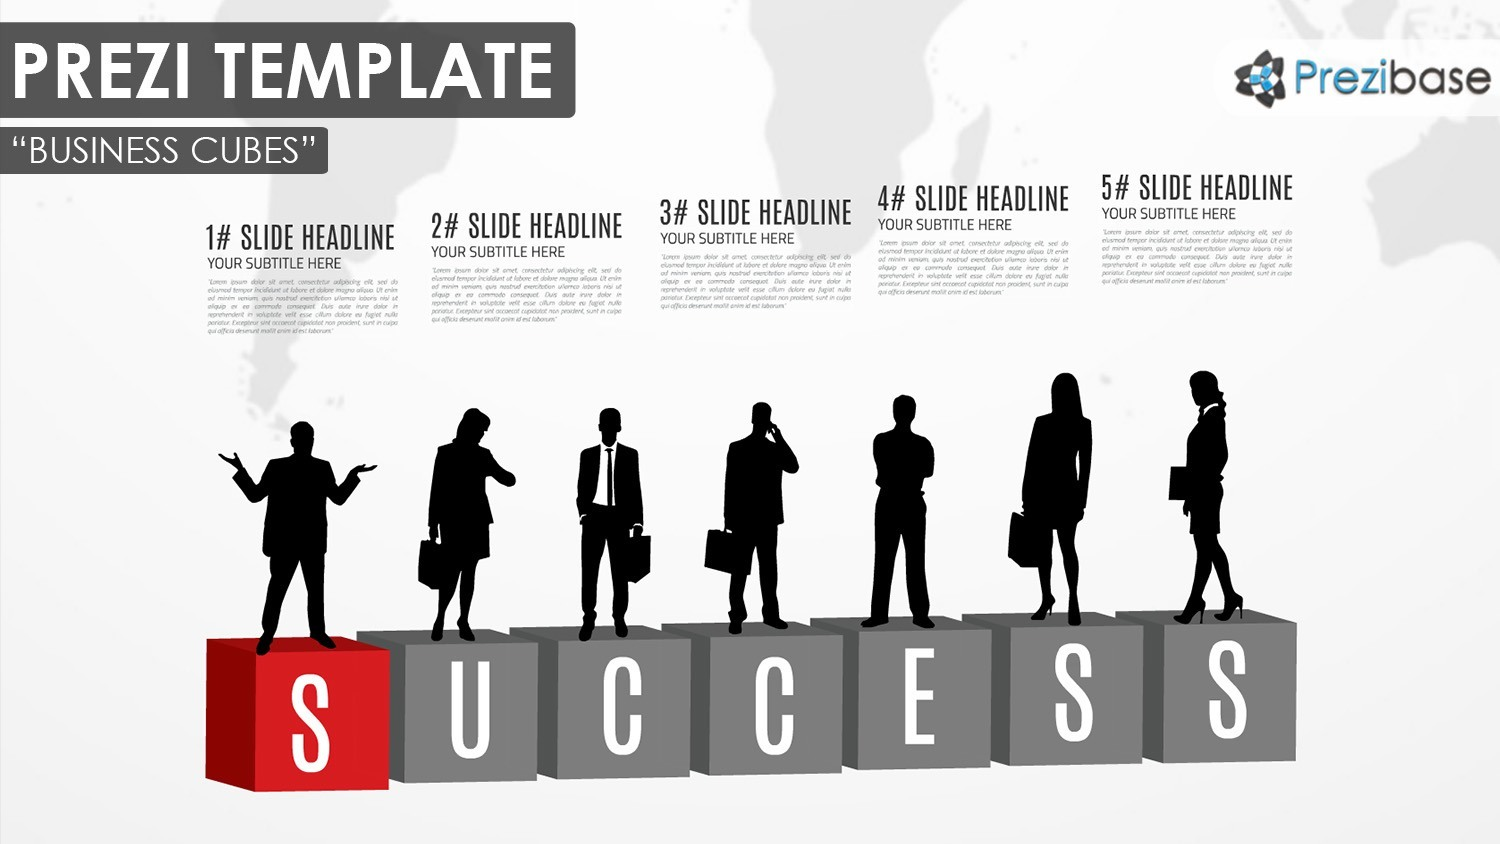 business cubes company business people silhouettes prezi template